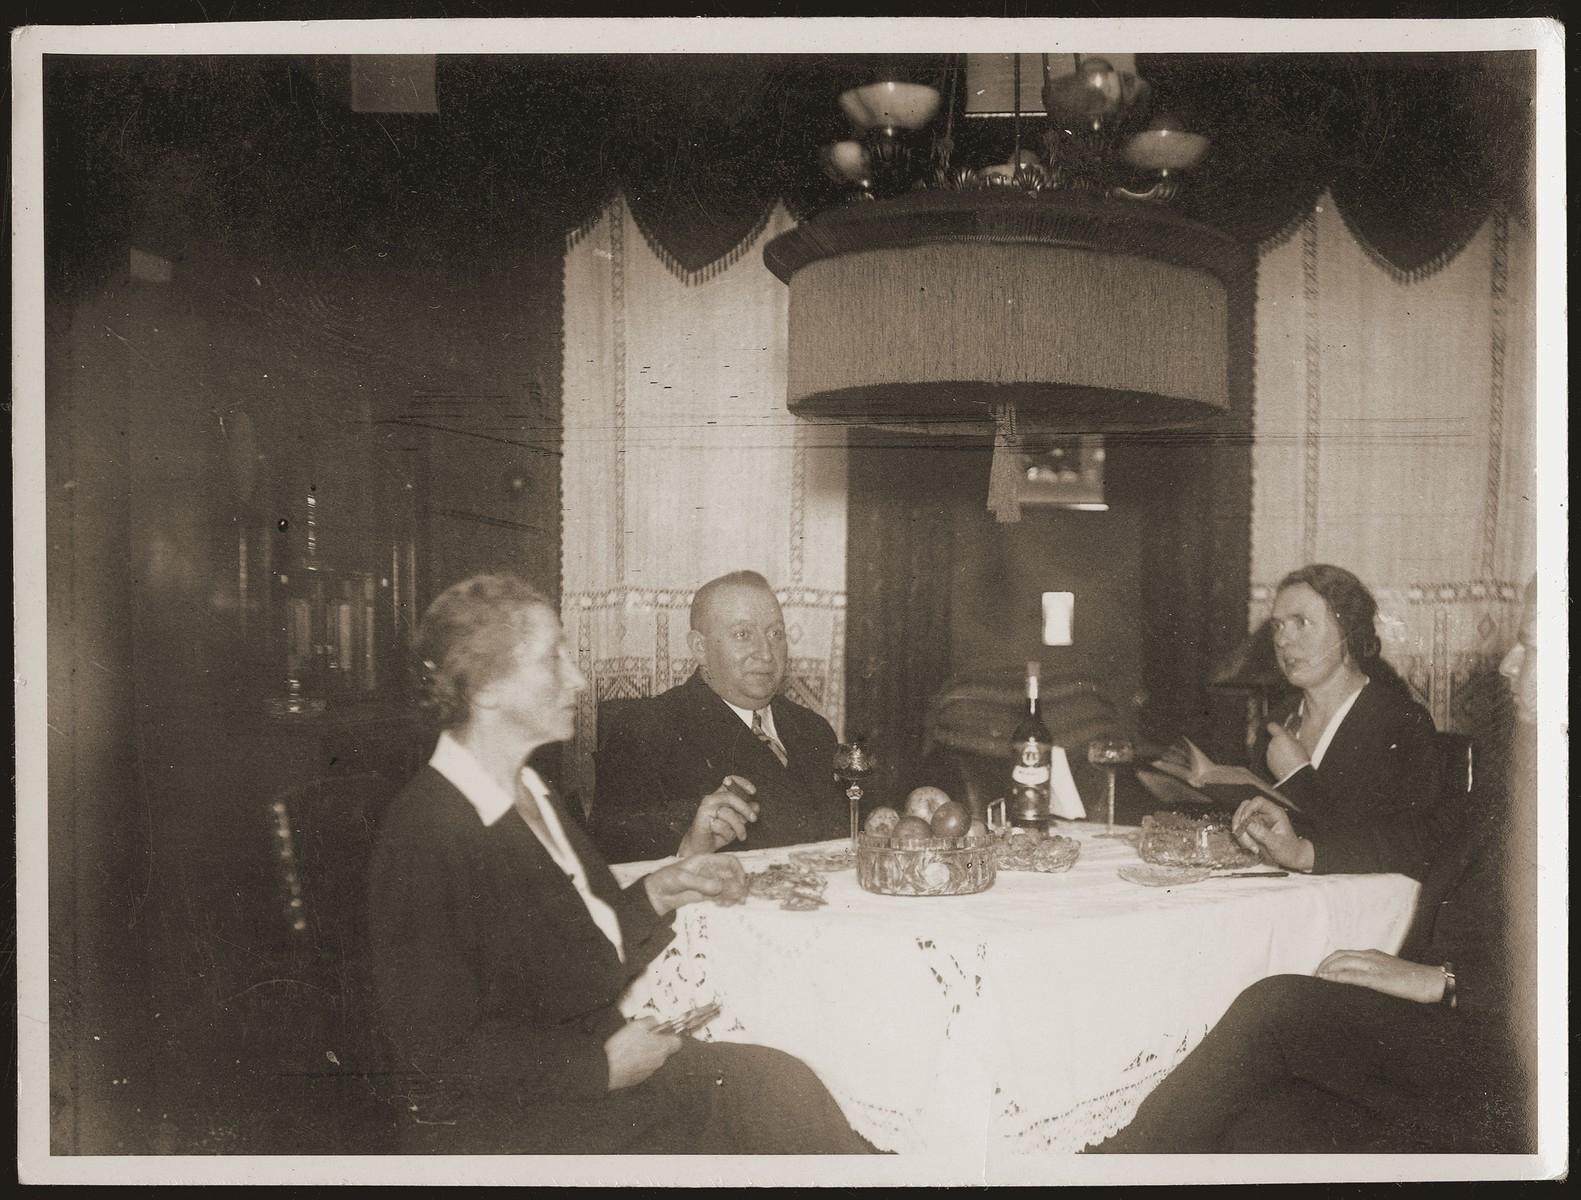 The Jacobsberg family celebrates Christmas with their German maid, Minna.    Pictured from left to right are Betti and Siegfried Jacobsberg, Minna, and Walter Jacobsberg.